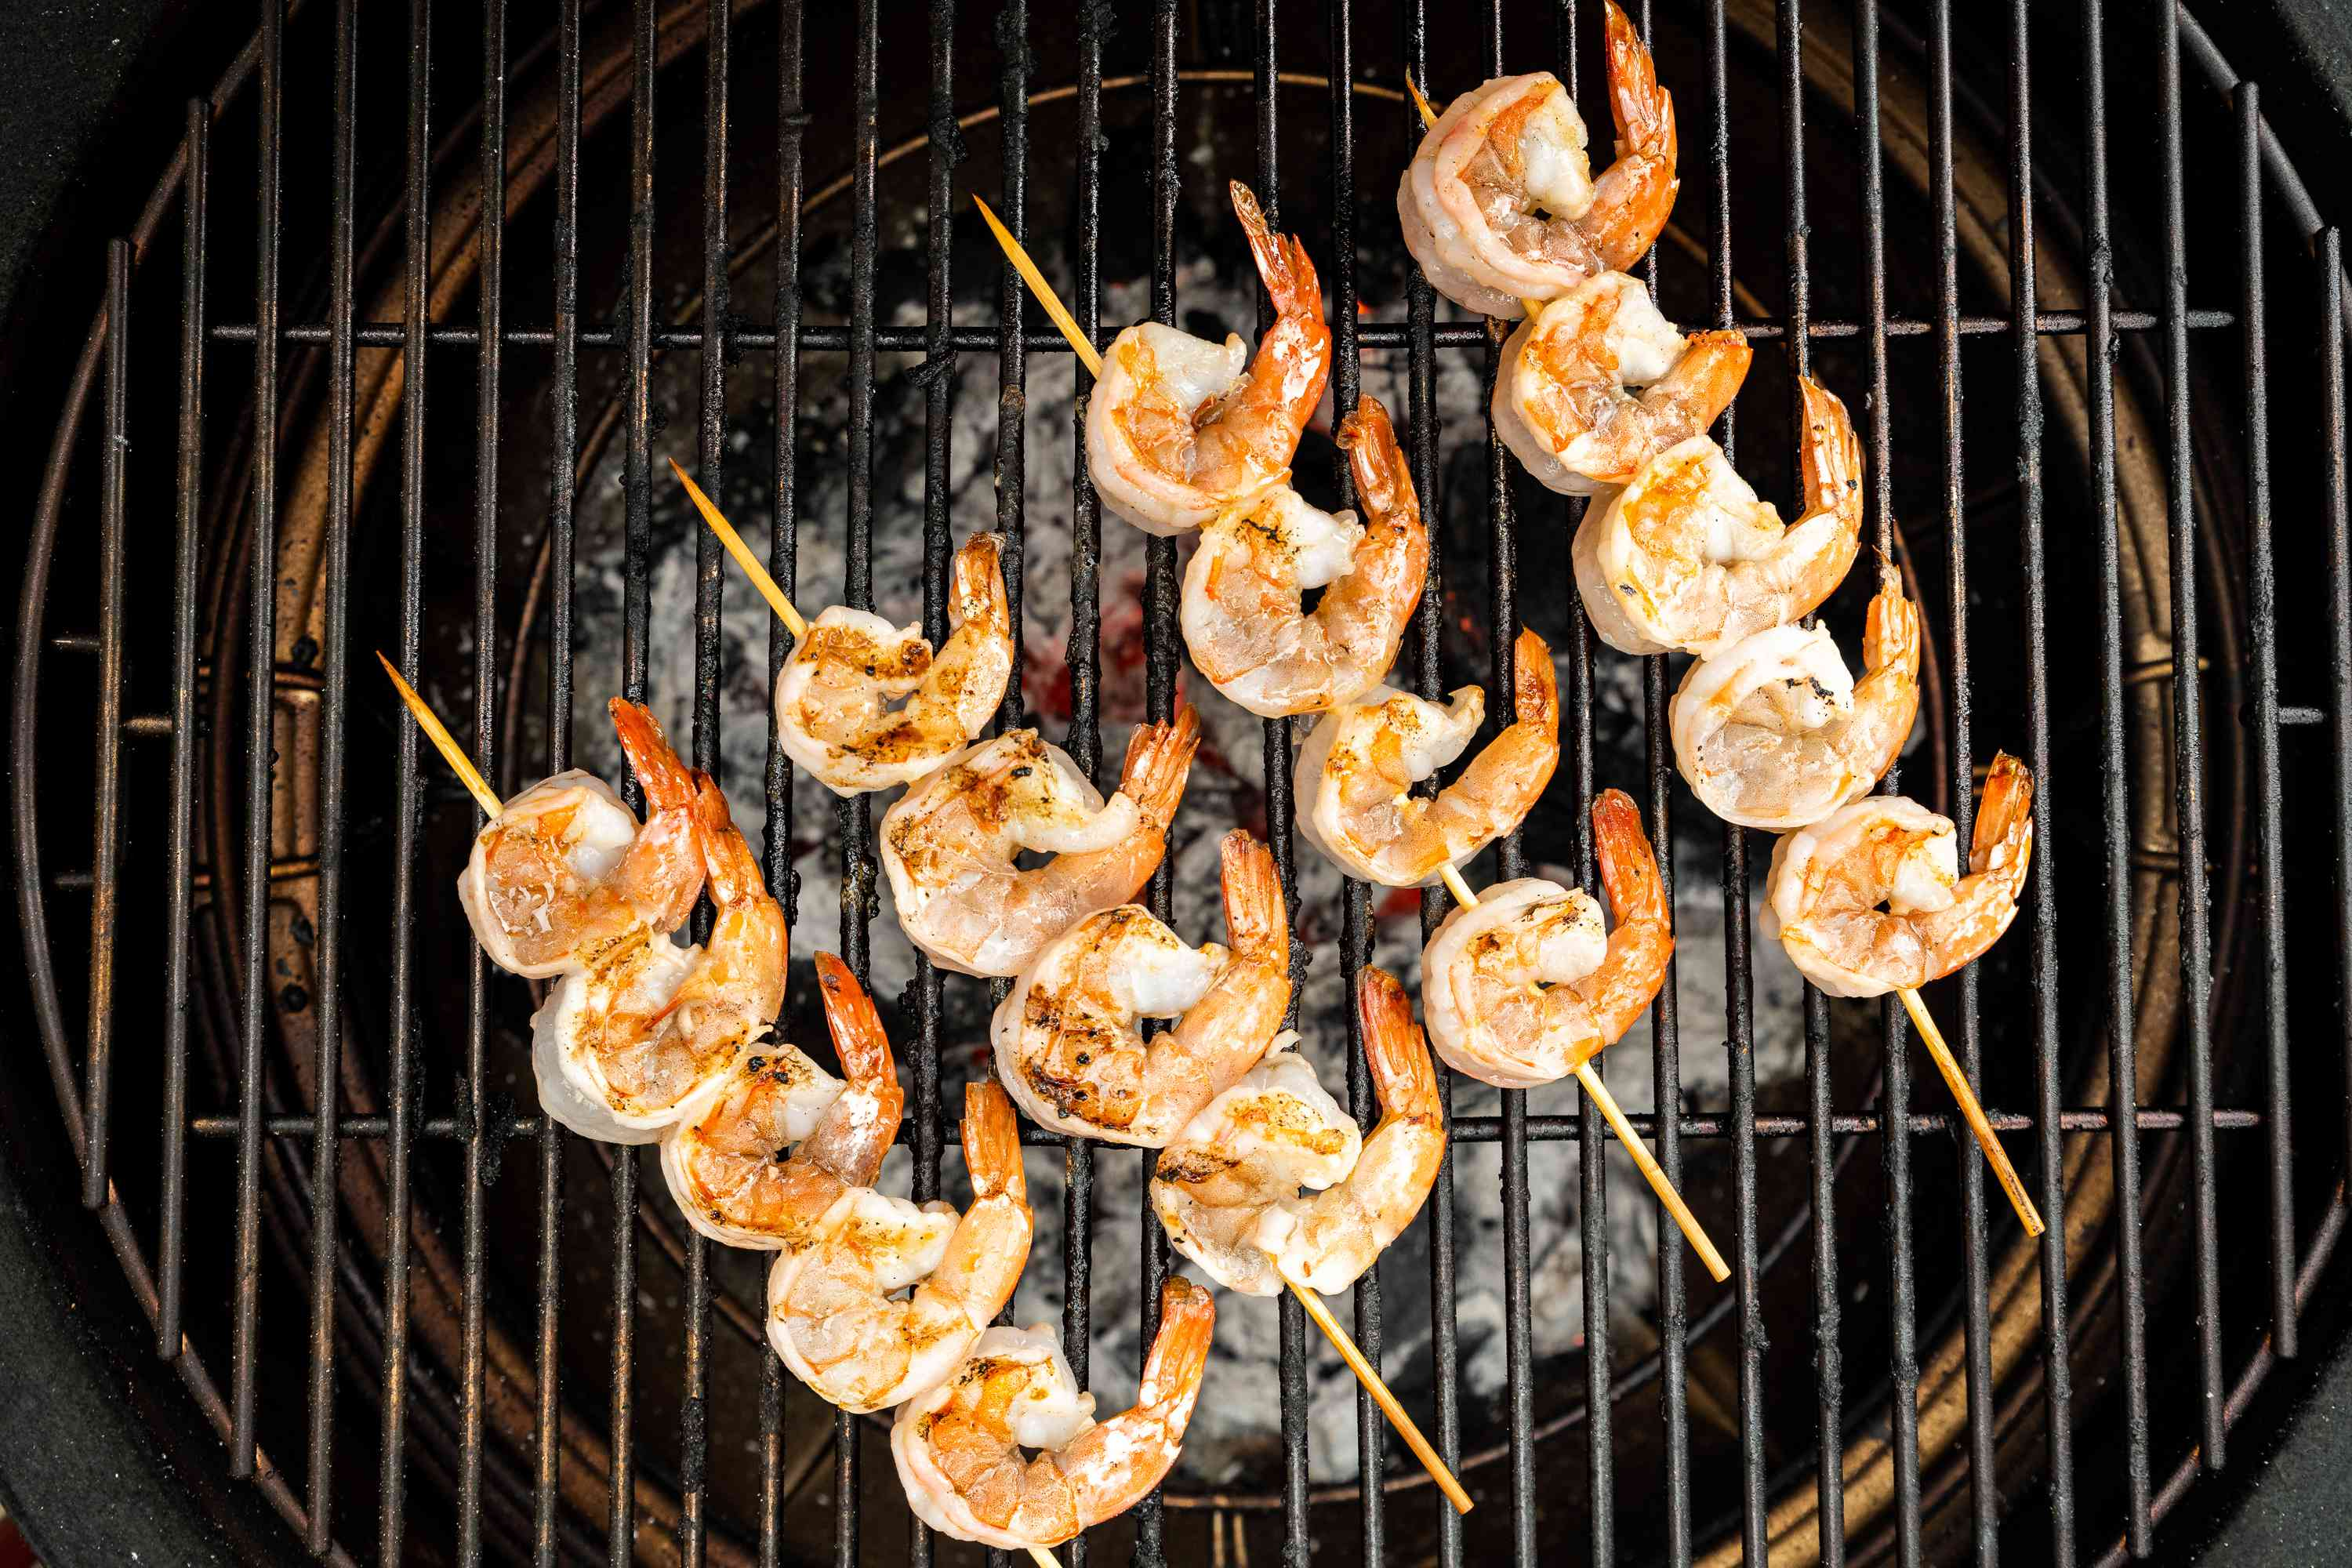 shrimp cooking on the grill